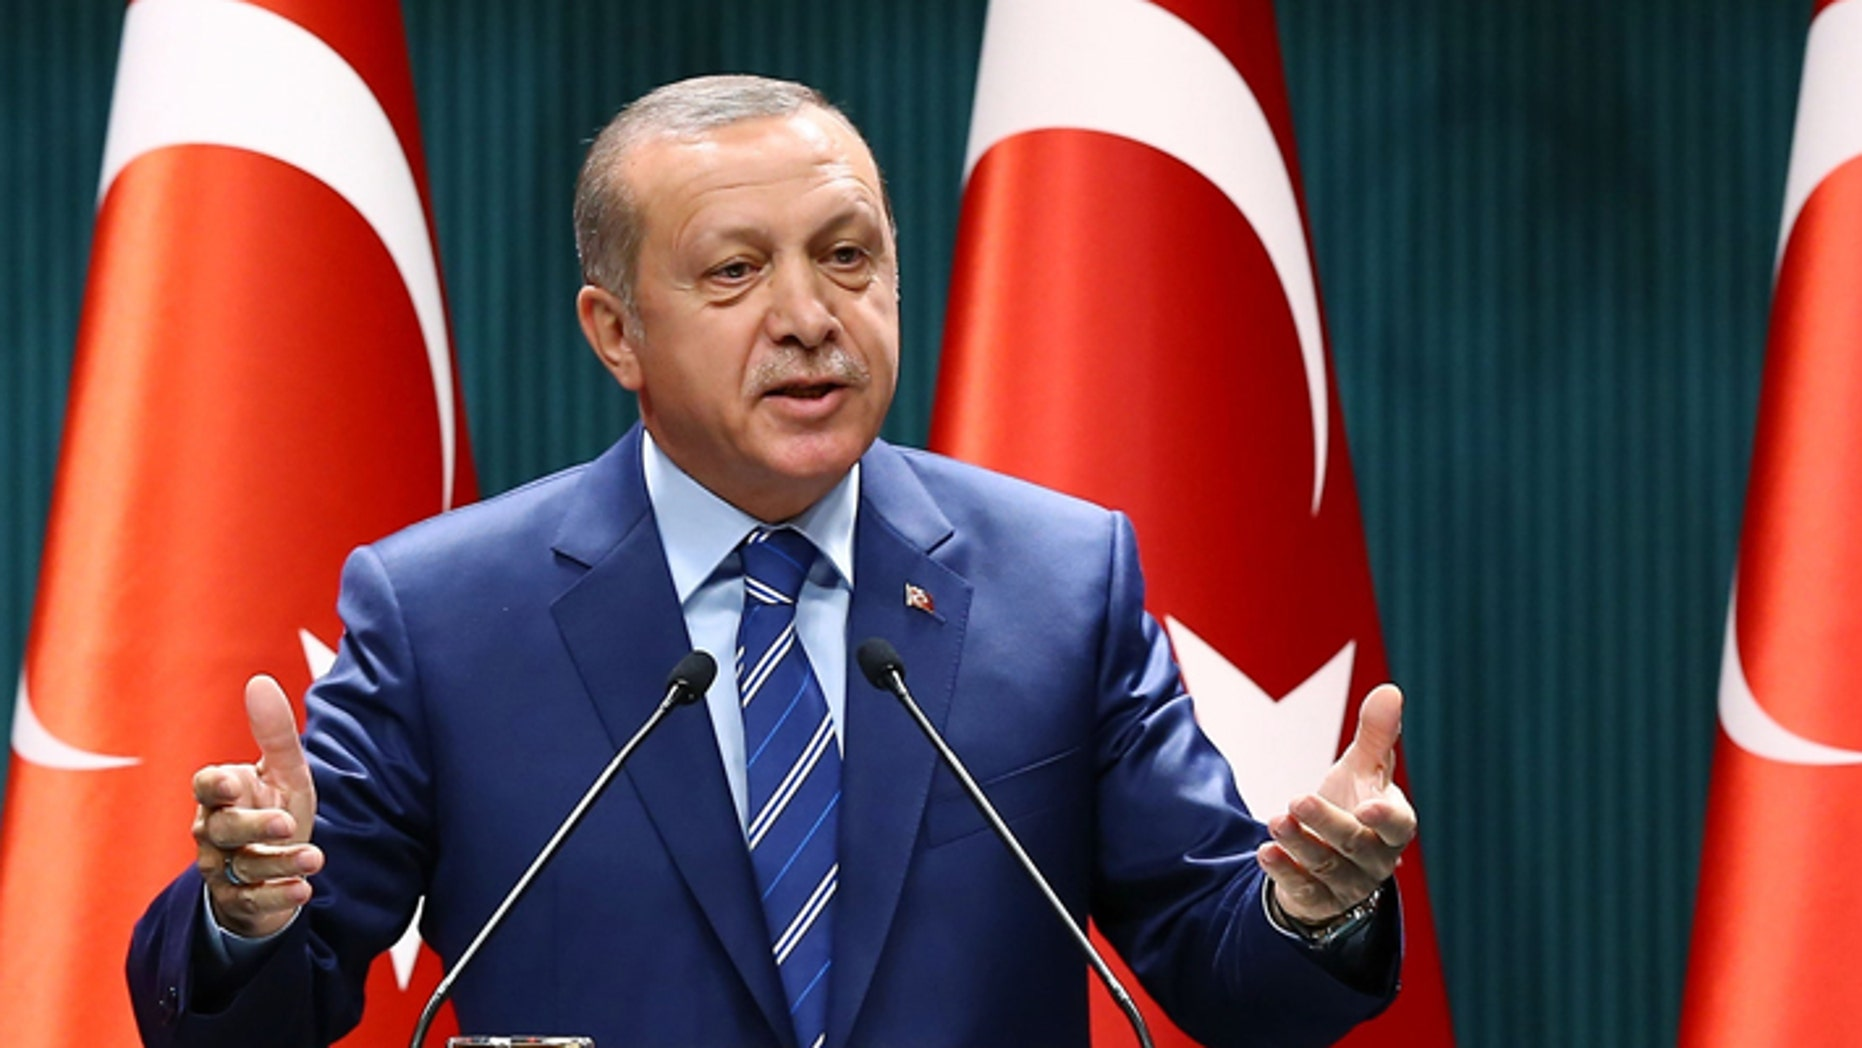 Turkish President Recep Tayyip Erdogan delivers a speech at the Presidential Palace in Ankara, Thursday, Aug. 18, 2016.